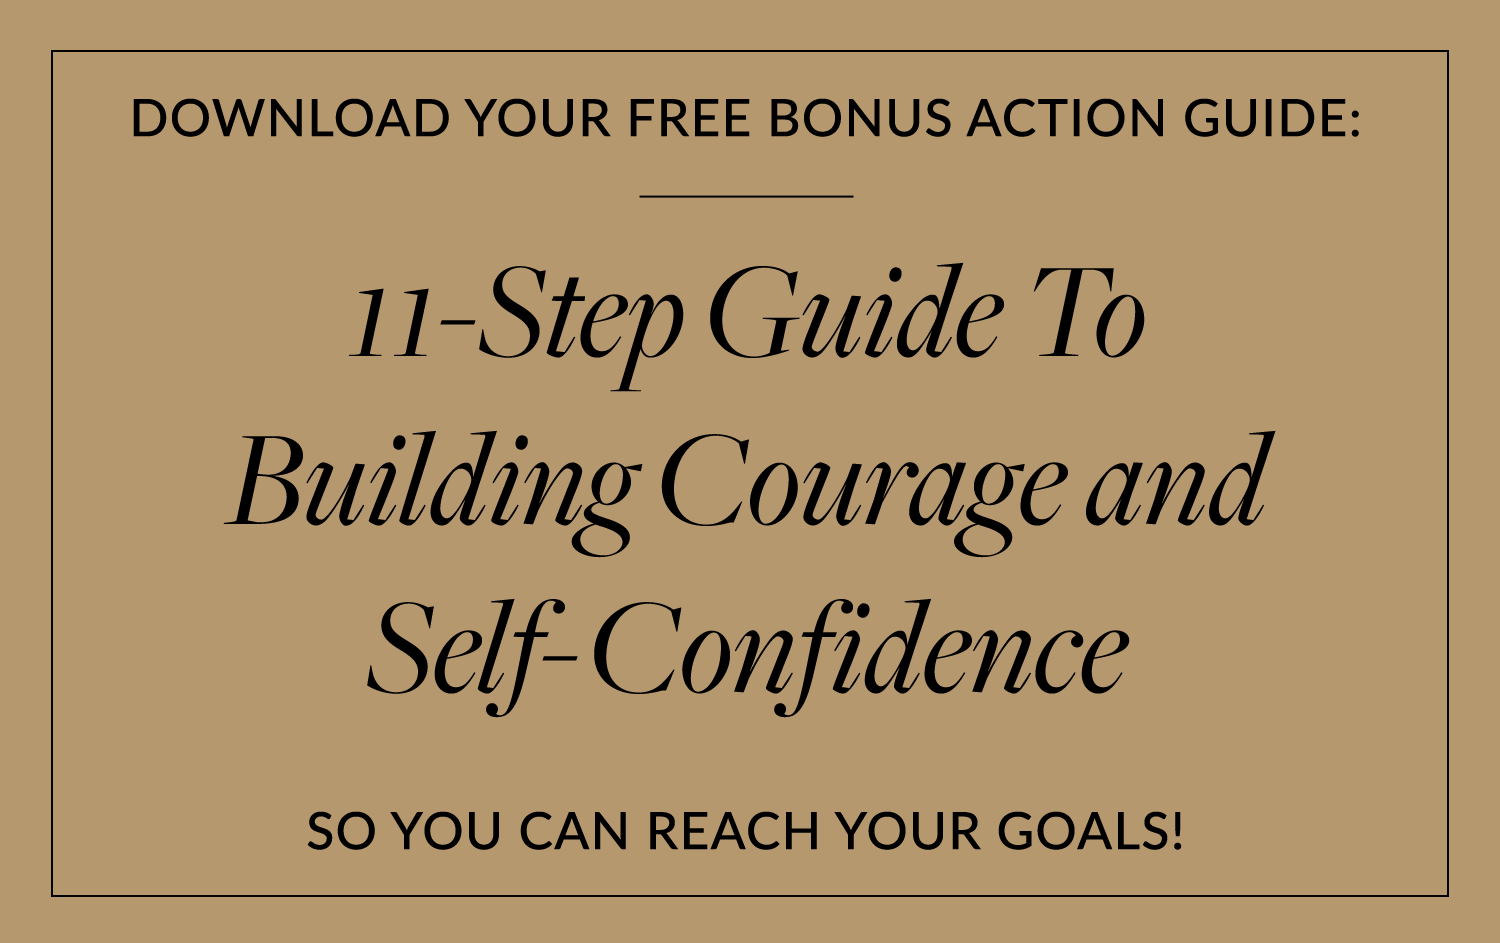 11-Step Guide To Building Courage And Self-Confidence